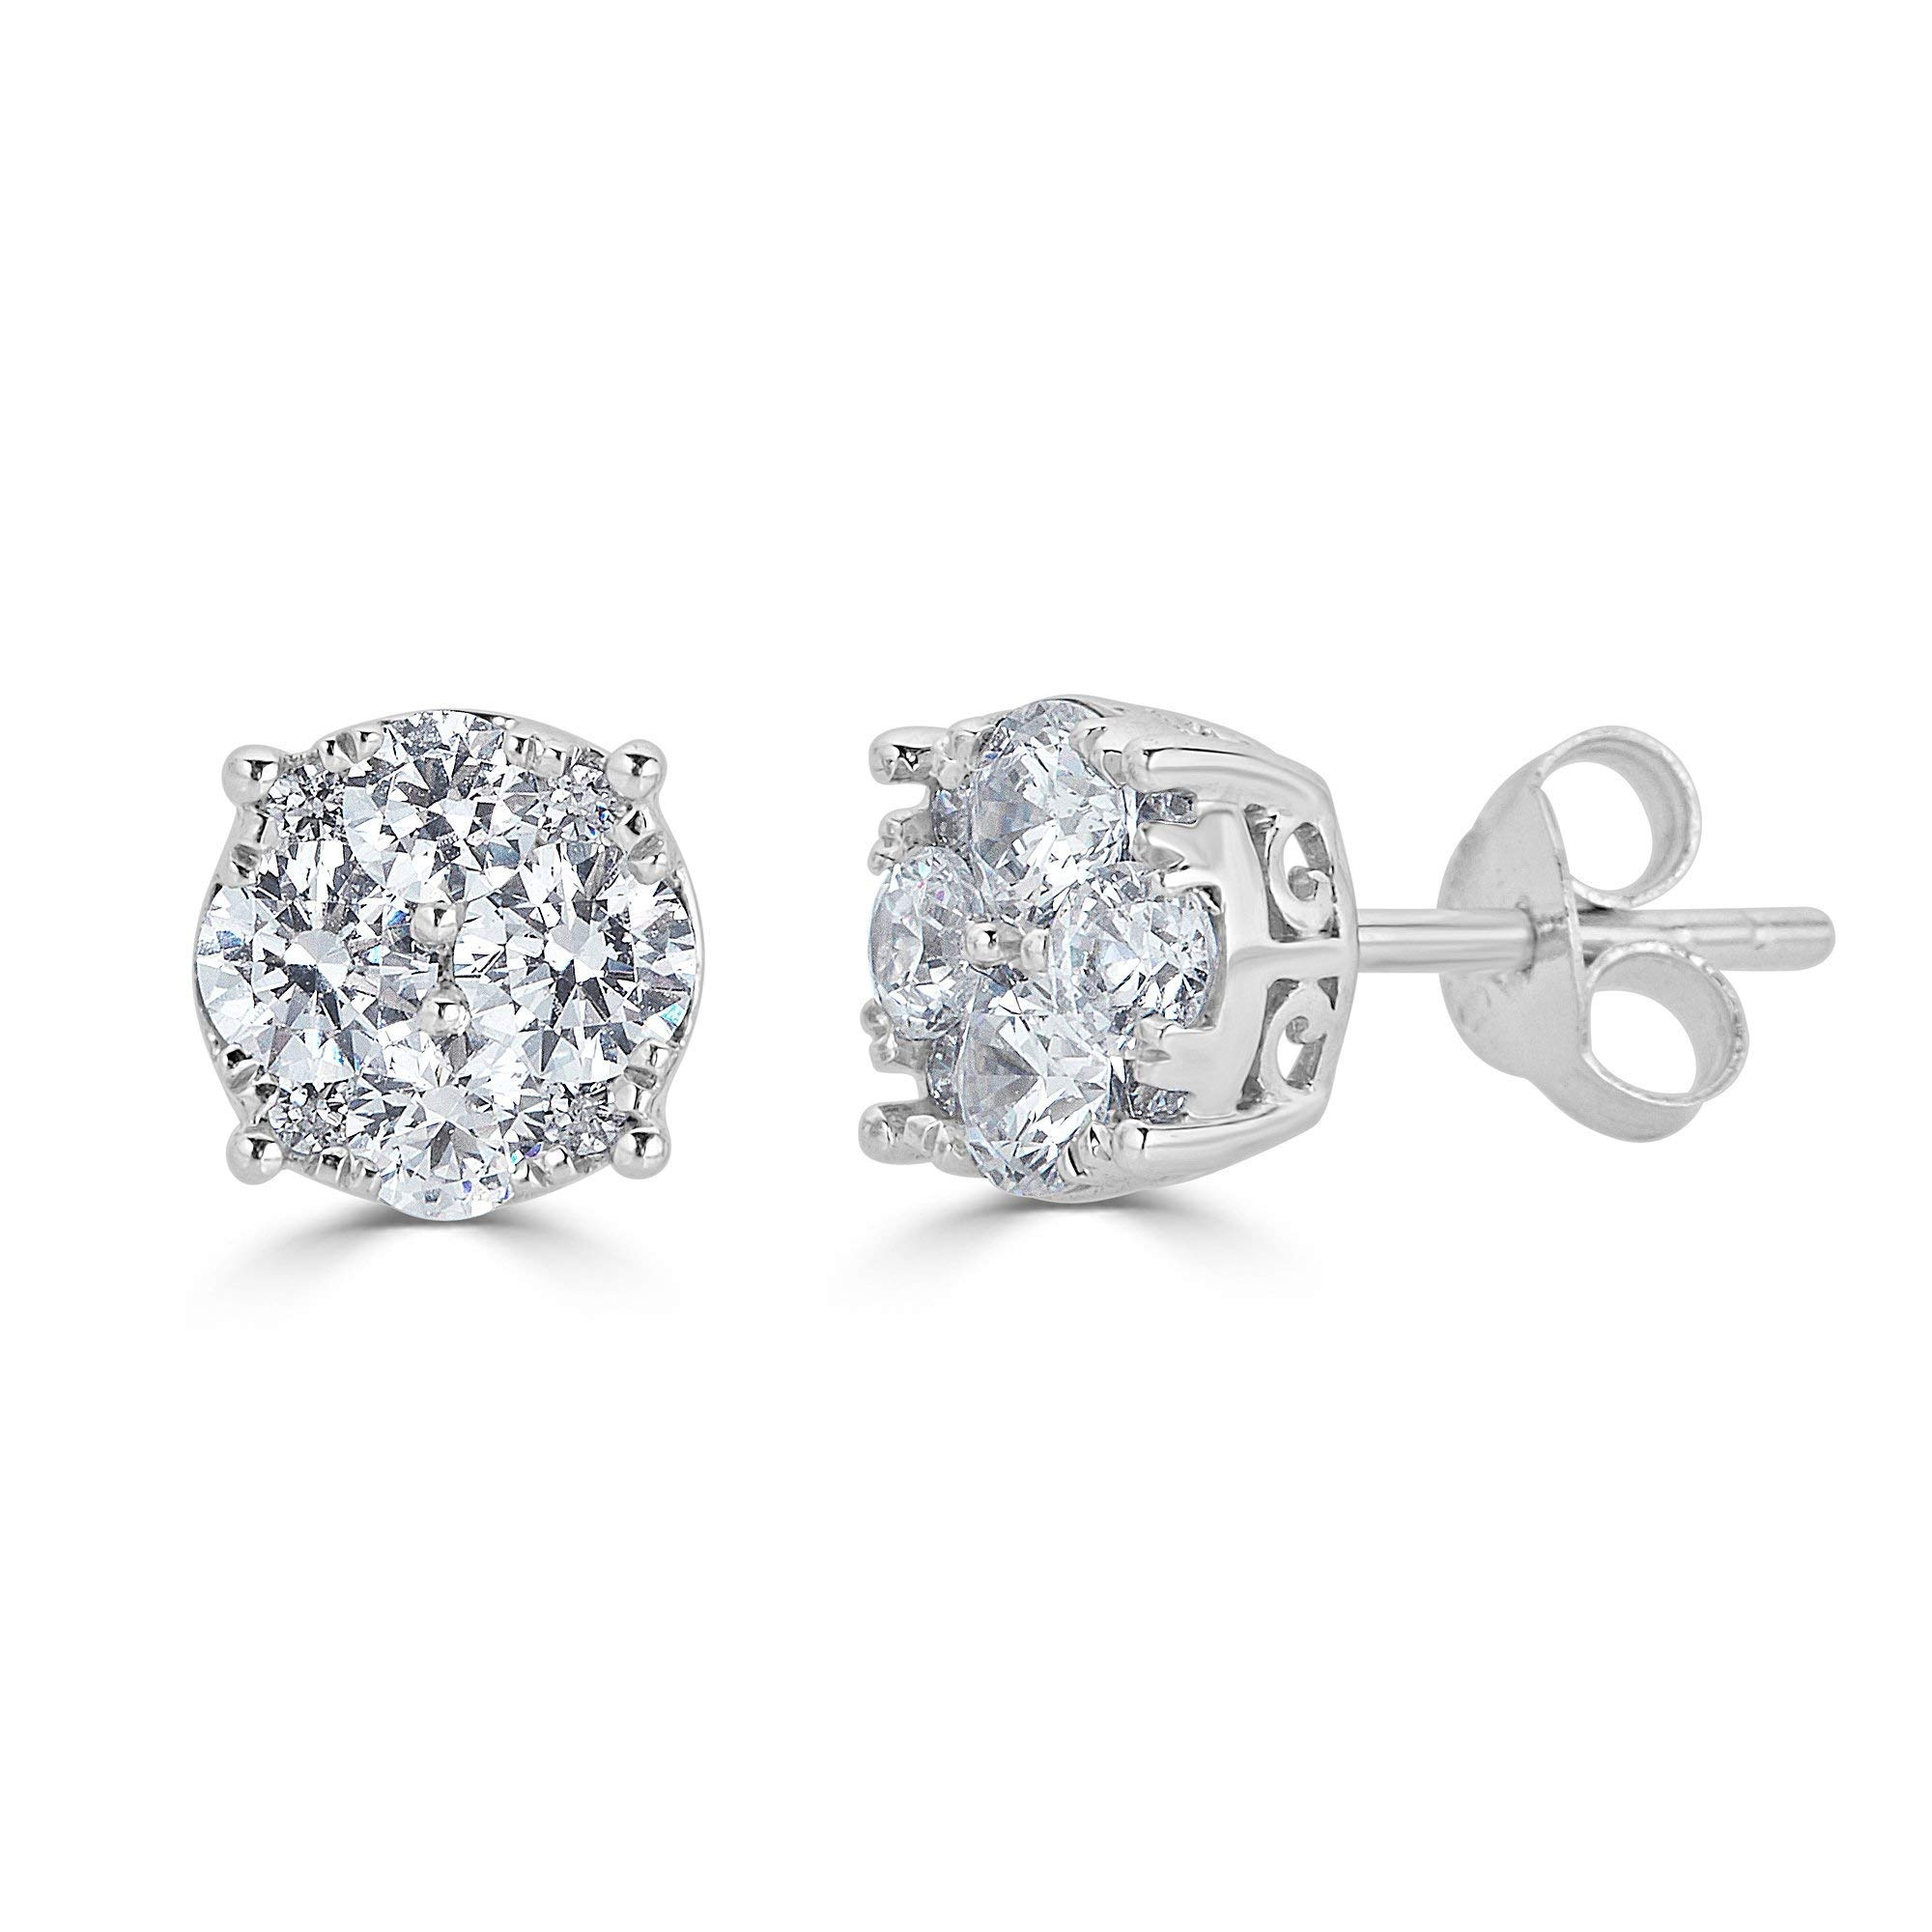 1/2Ct Diamond Stud Earrings Set in Sterling Silver by Lotus Collection